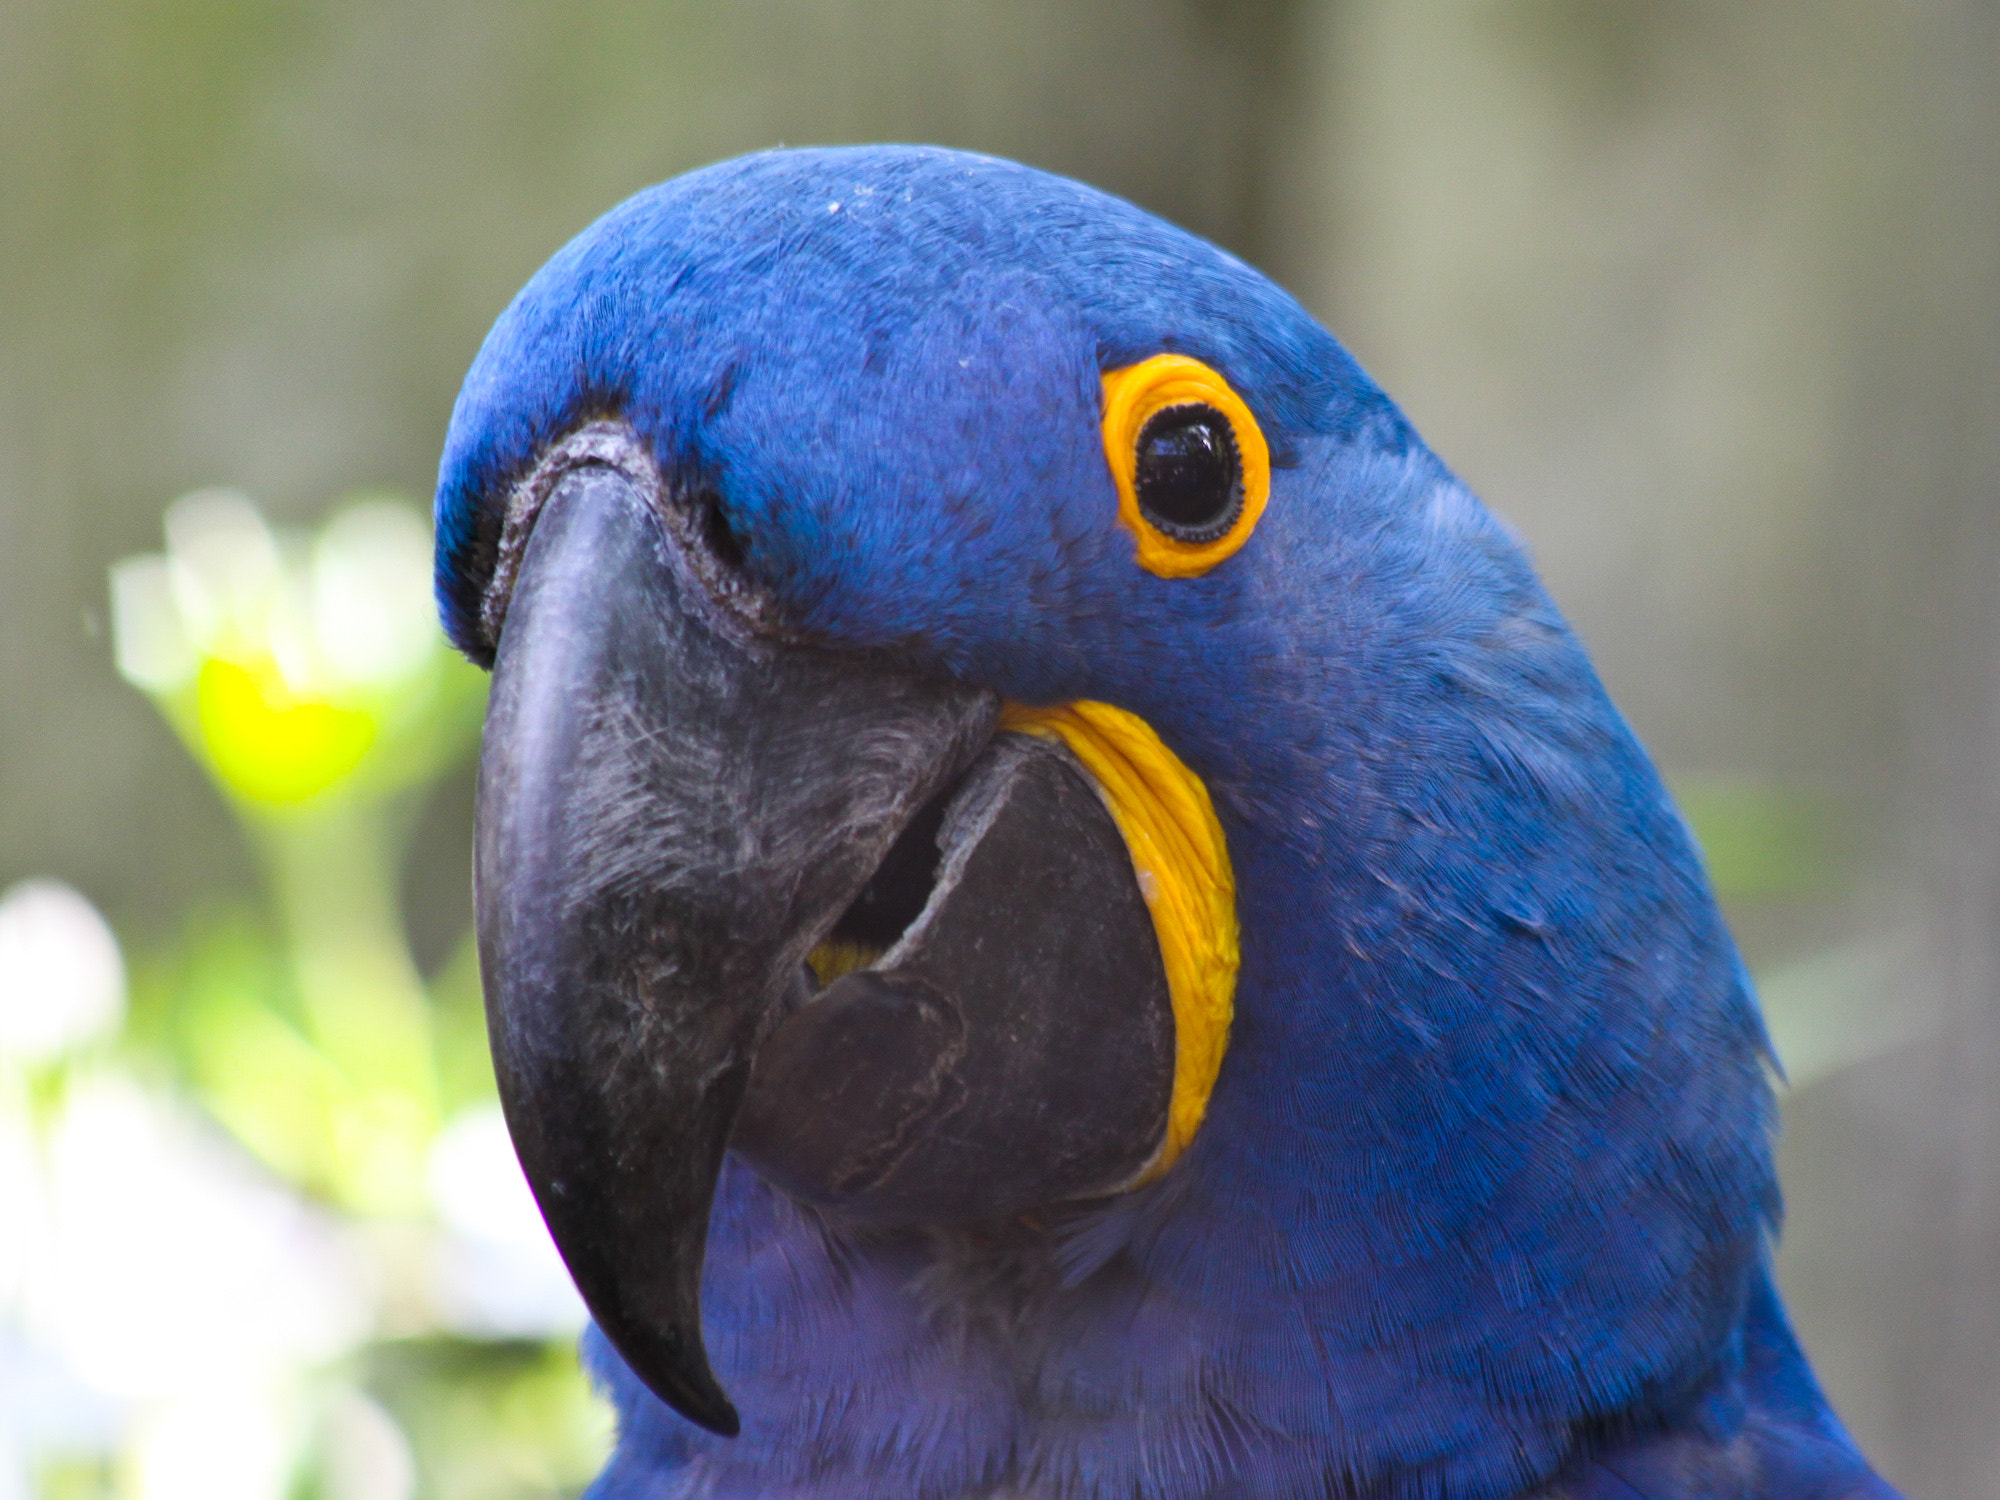 Photograph Blue parrot by Bastien Colmard on 500px